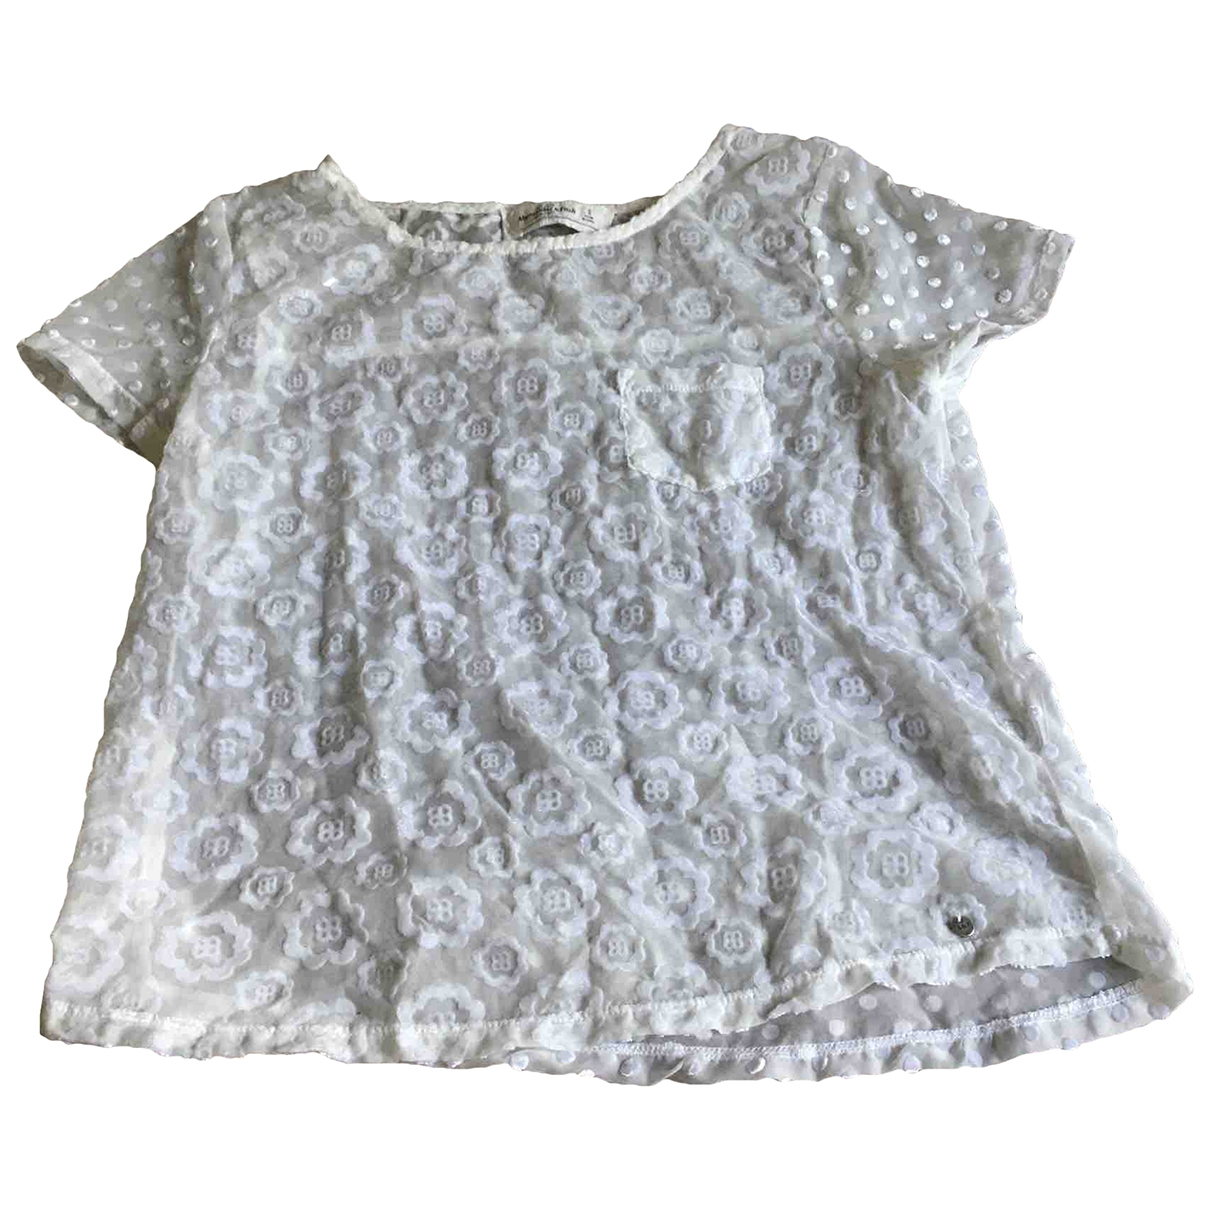 Abercrombie & Fitch \N White  top for Women S International